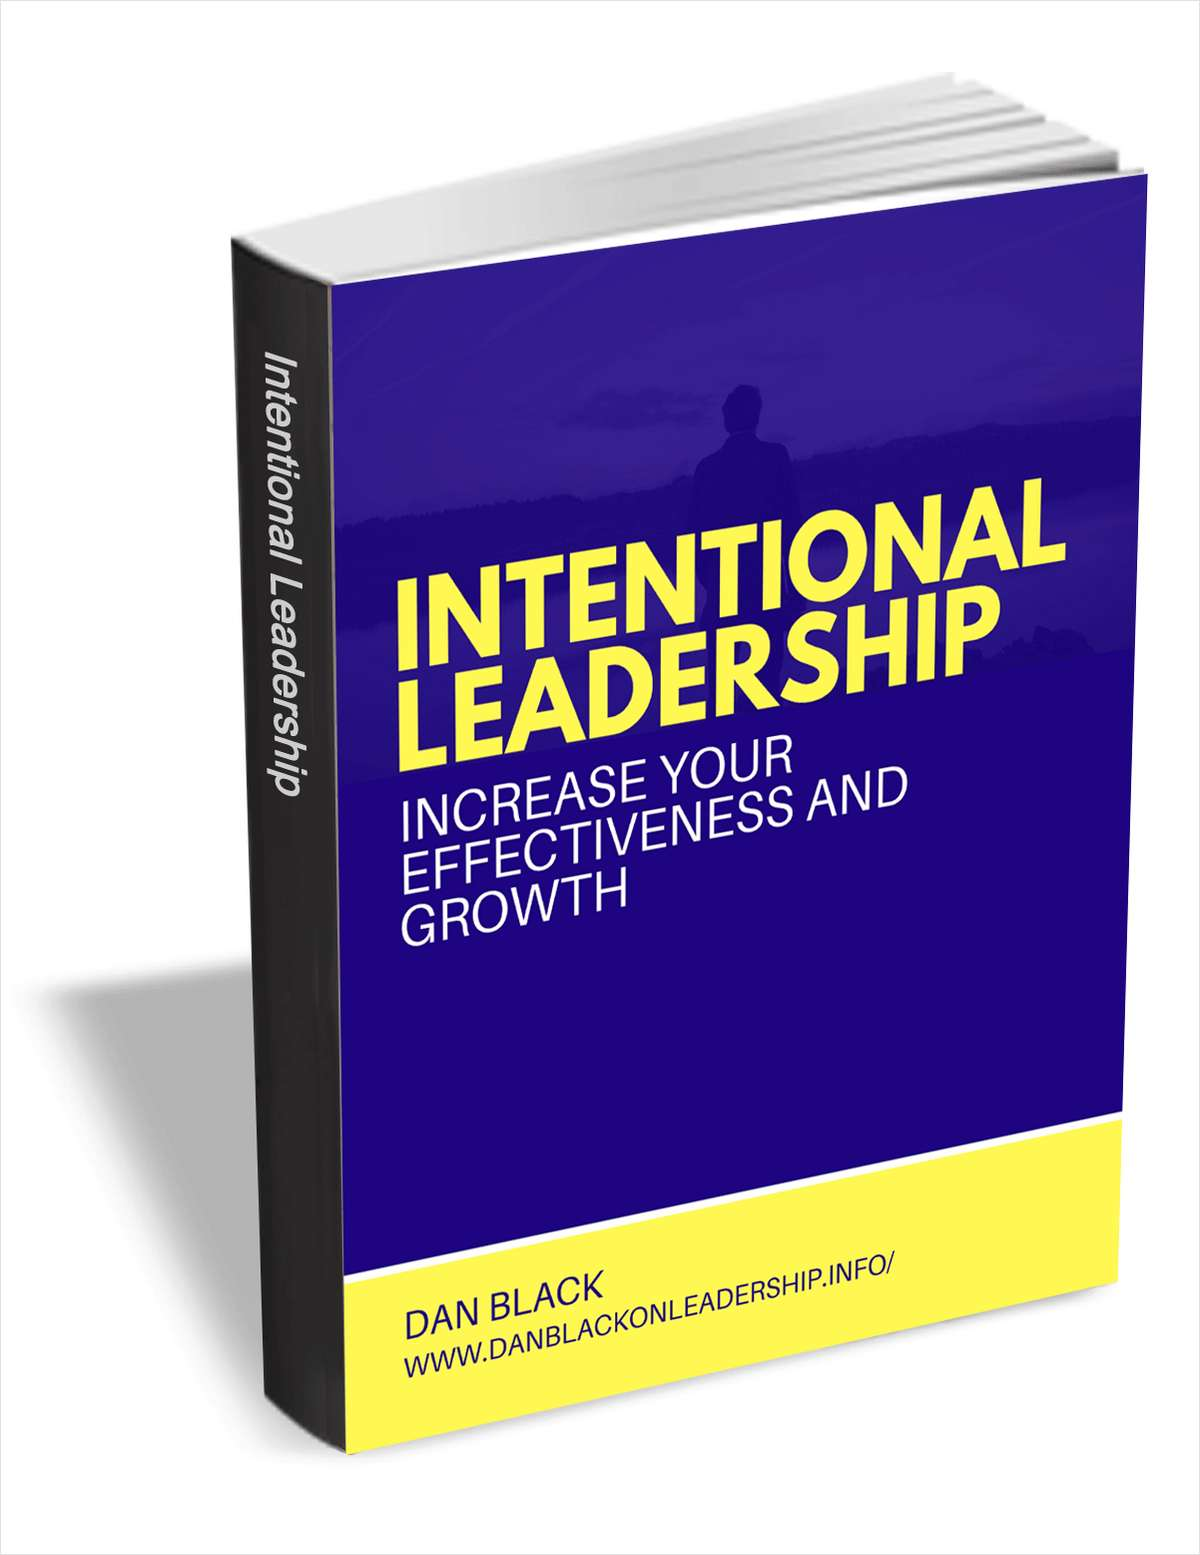 Intentional Leadership - Increase Your Effectiveness and Growth